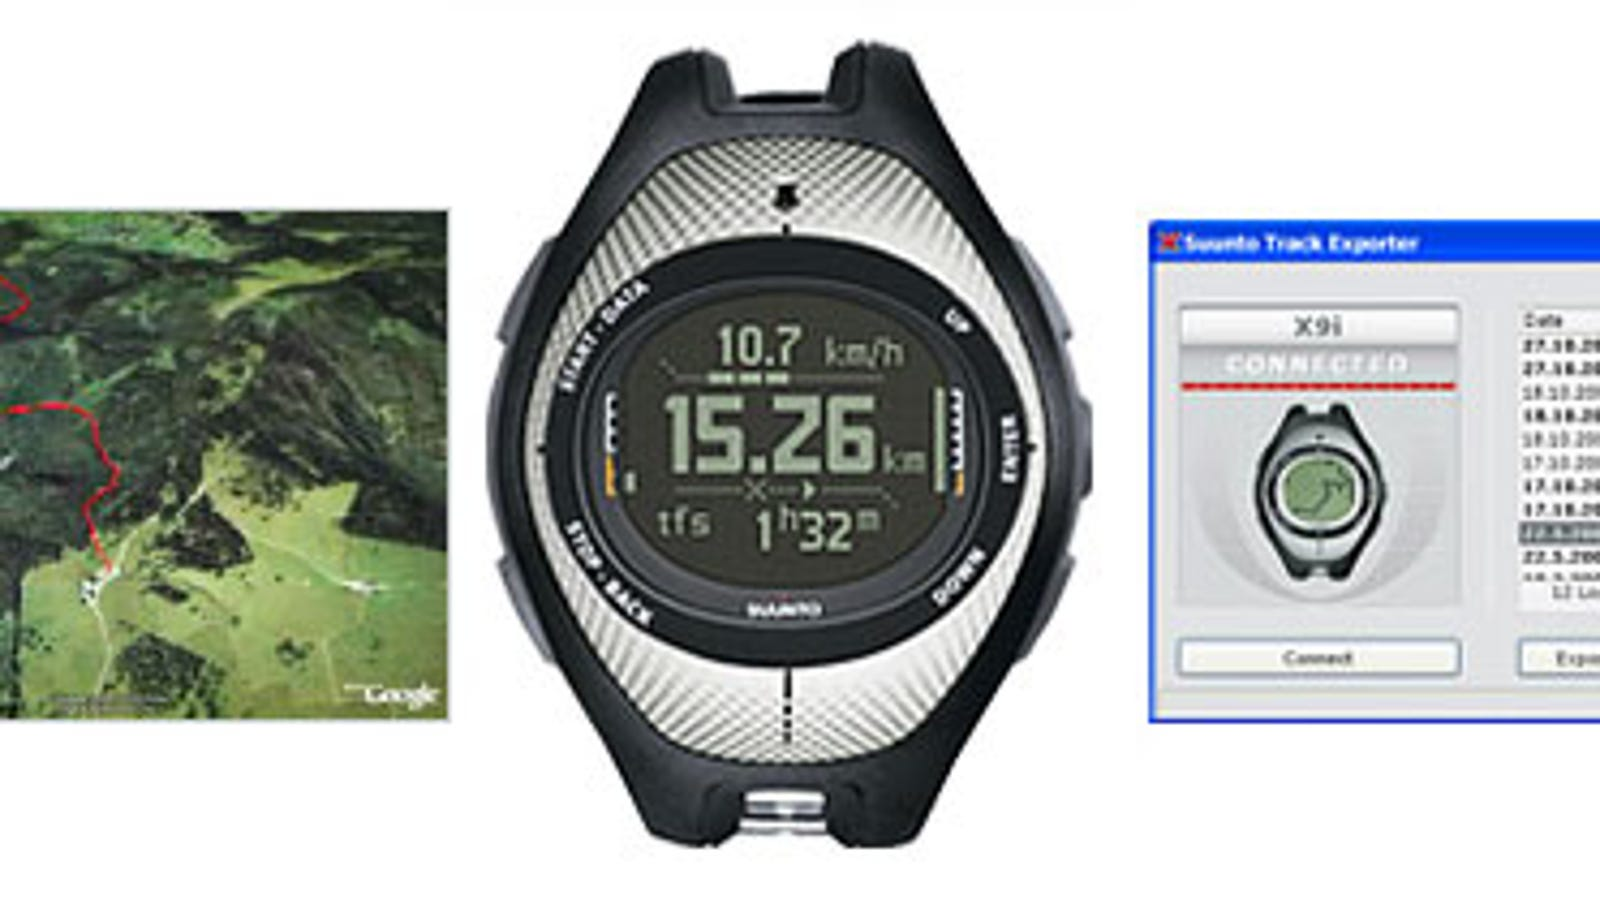 GPS Coolness: Downloading Suunto and Garmin Forerunner Data